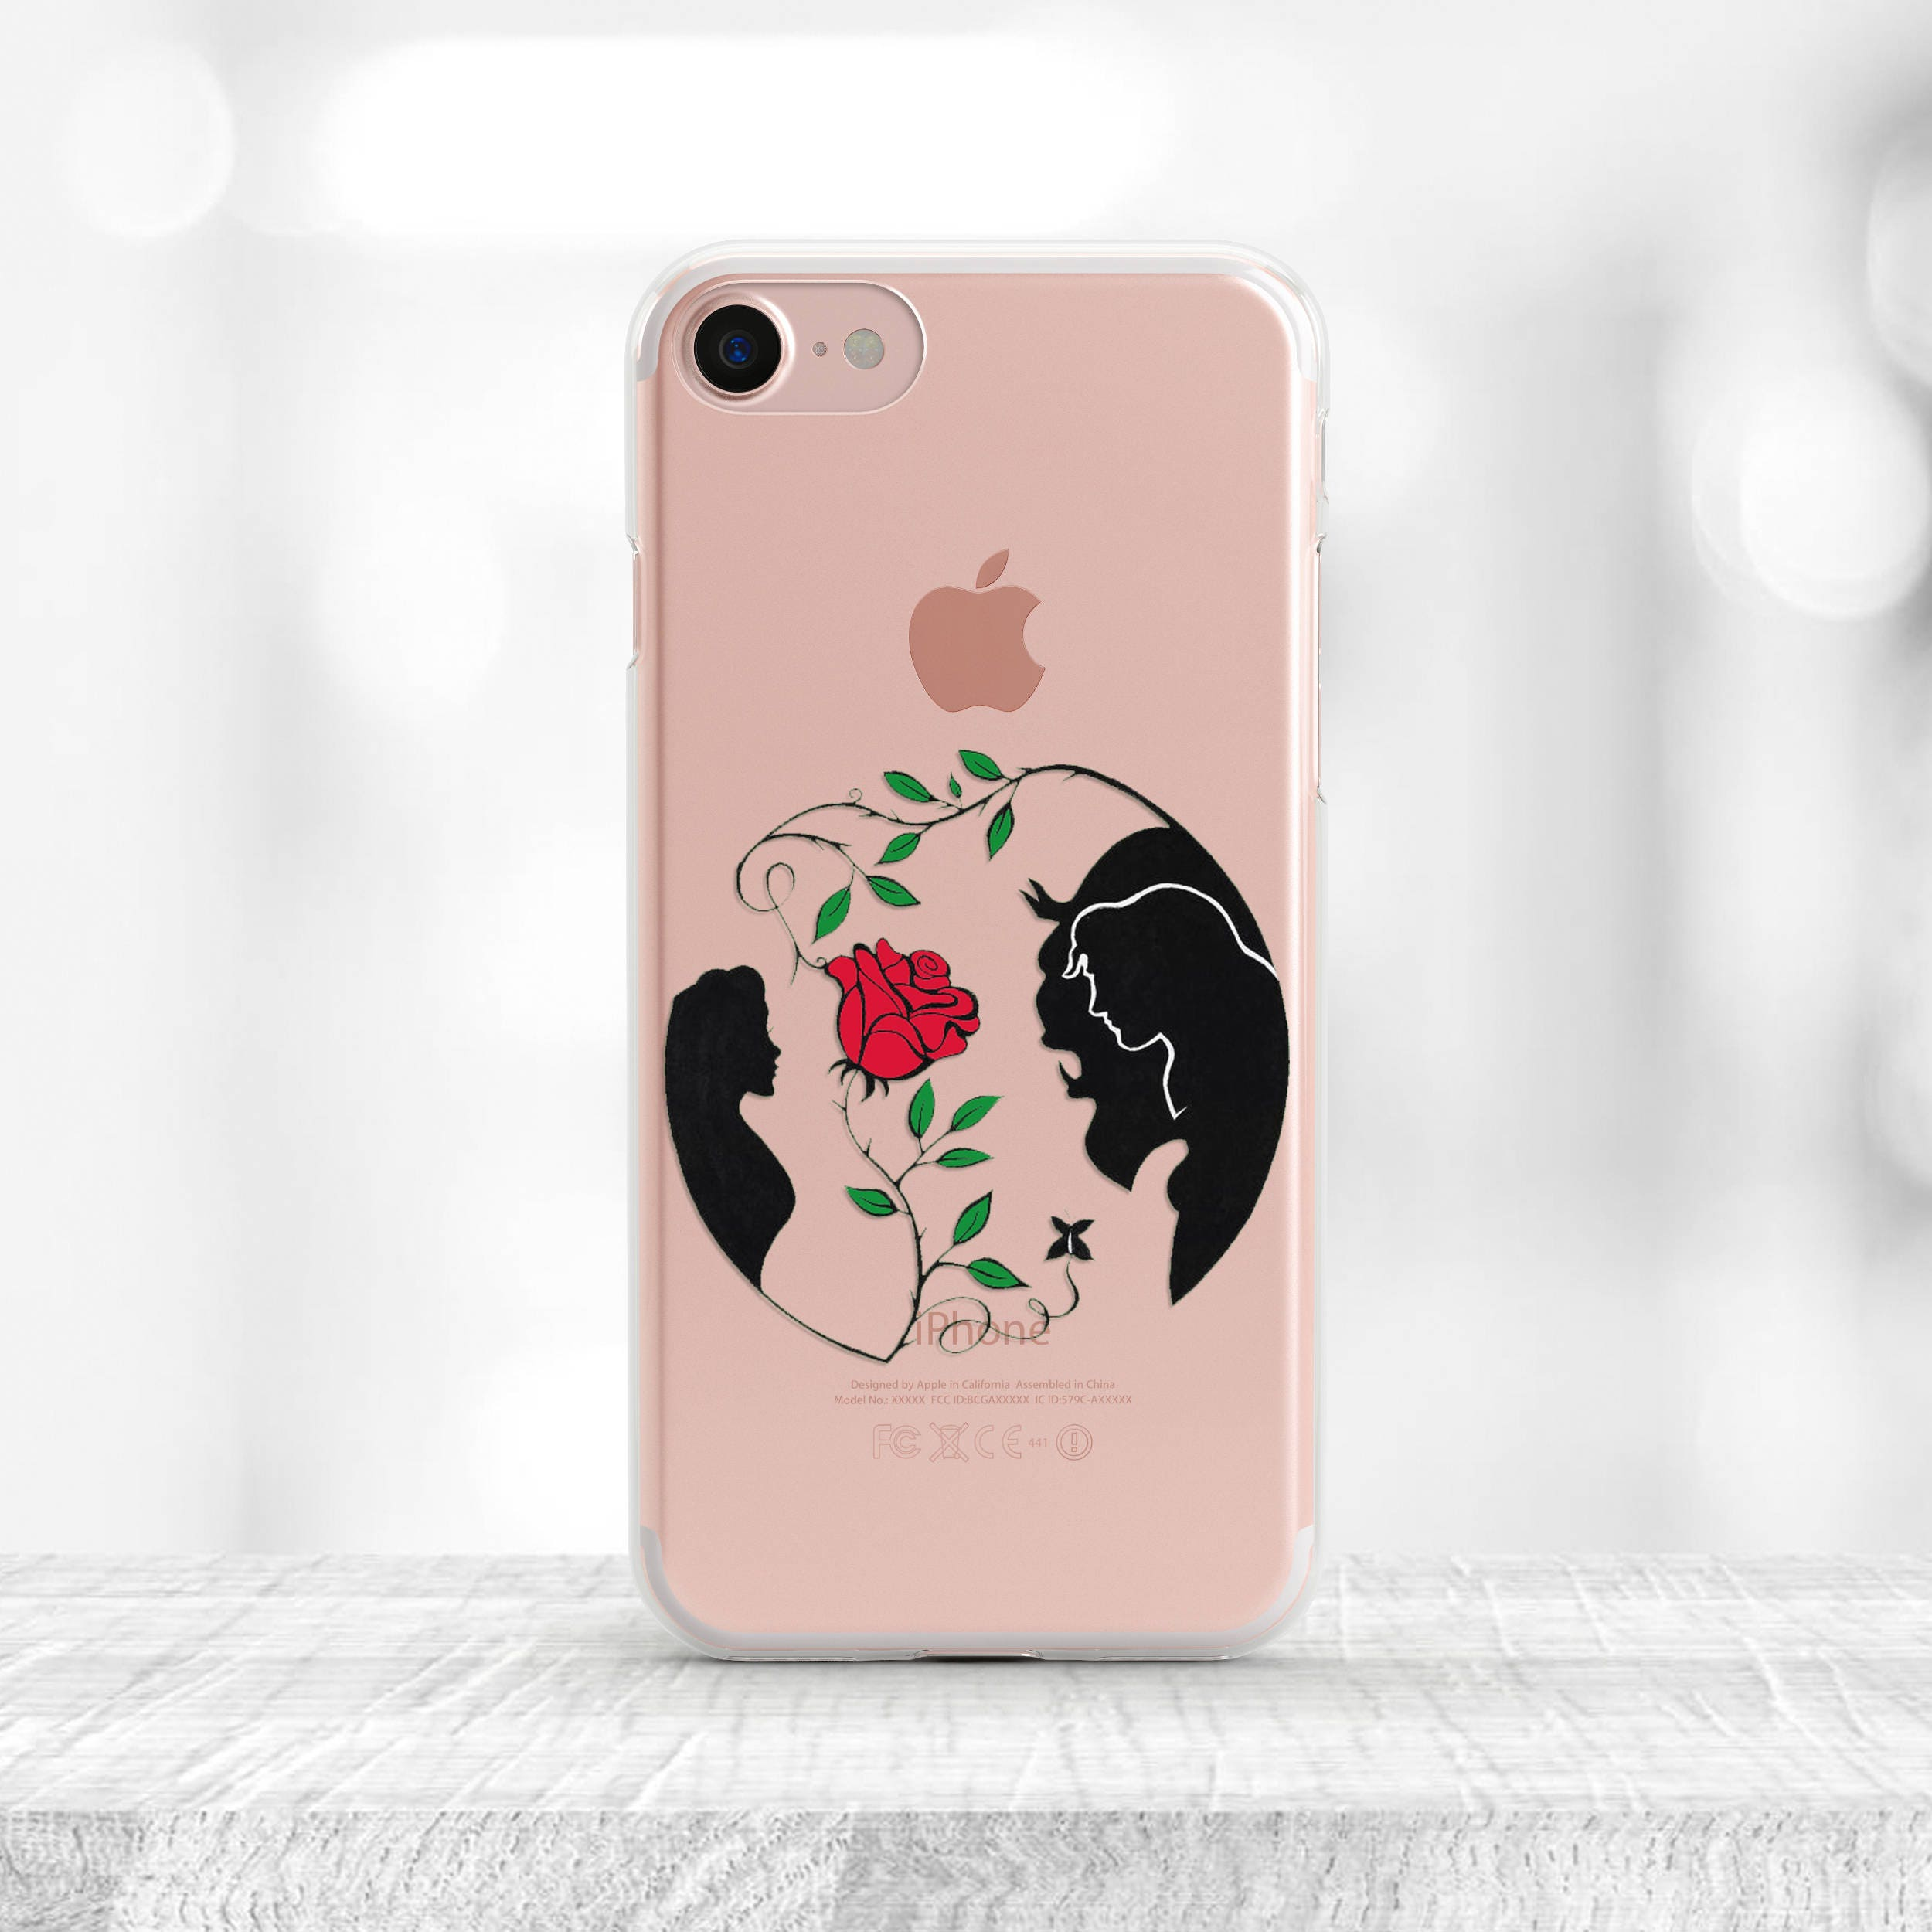 Beauty and the Beast iPhone Case Disney iPhone 7 Case rubber